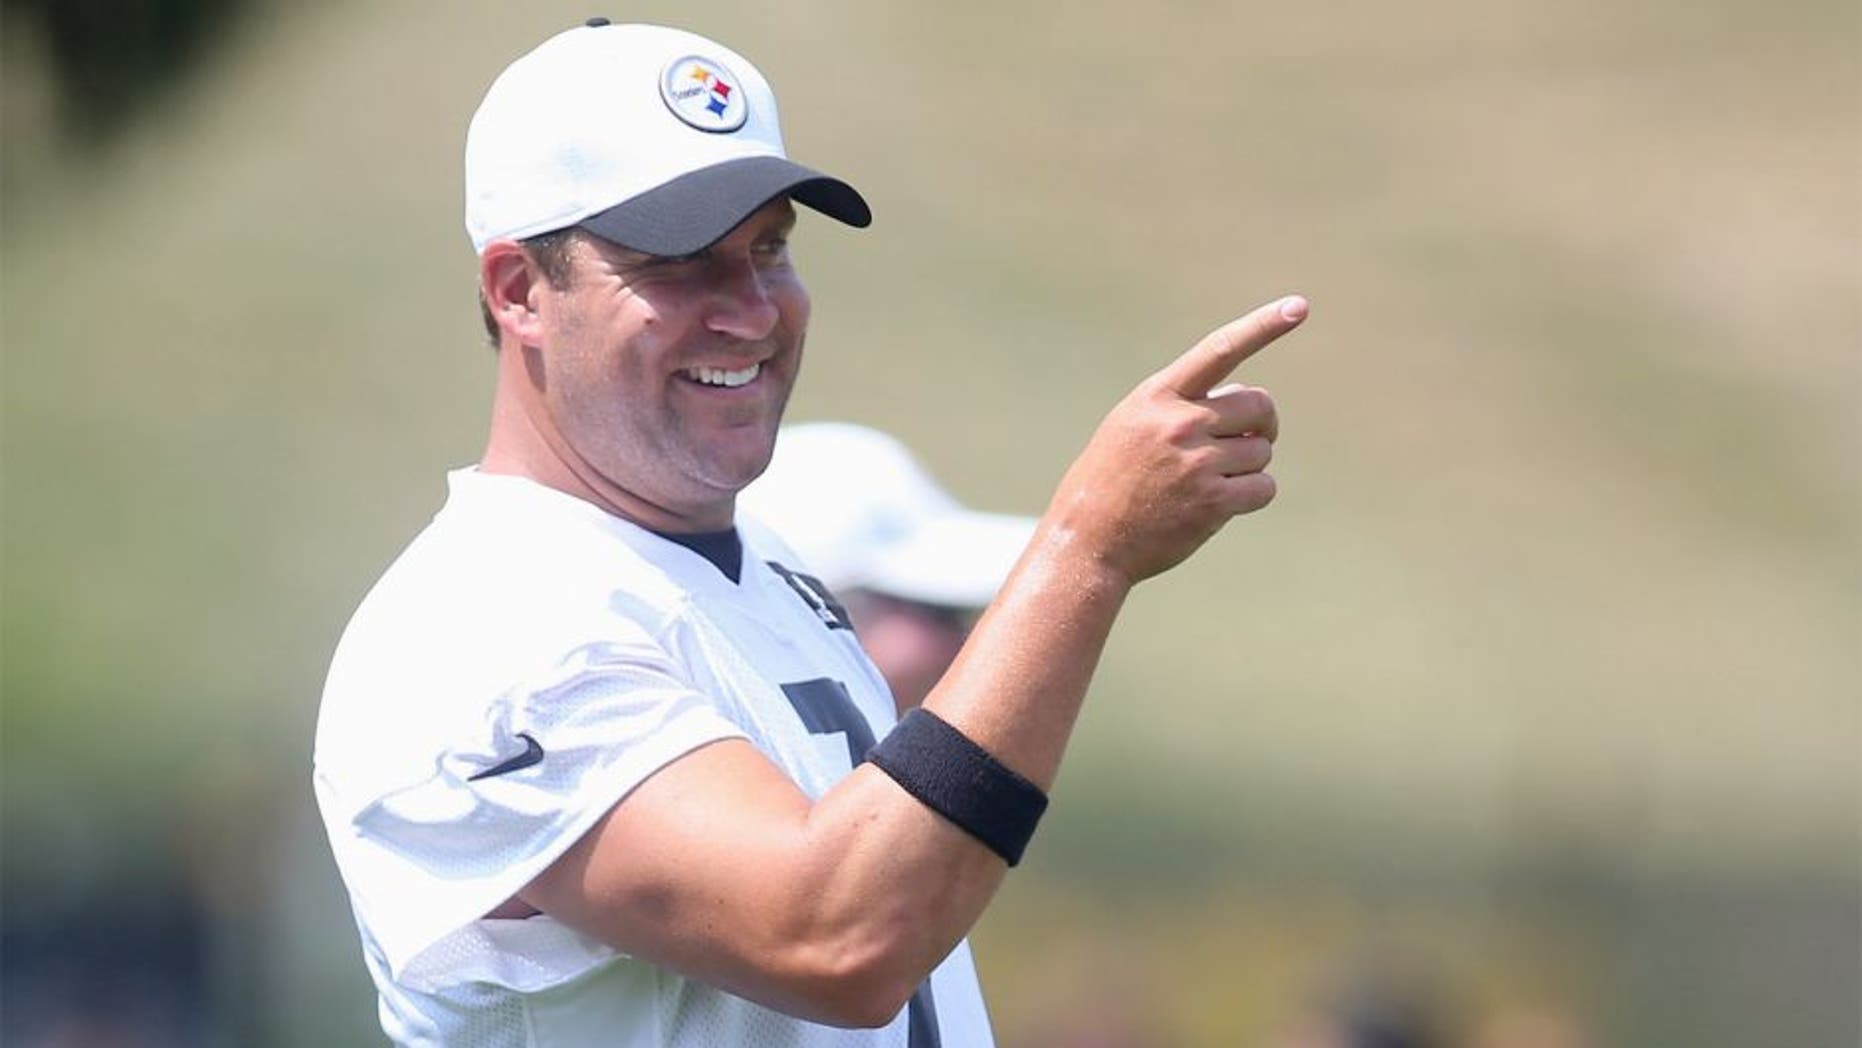 Jul 27, 2015; Latrobe, PA, USA; Pittsburgh Steelers quarterback Ben Roethlisberger (7) gestures in drills during training camp at Saint Vincent College. Mandatory Credit: Charles LeClaire-USA TODAY Sports